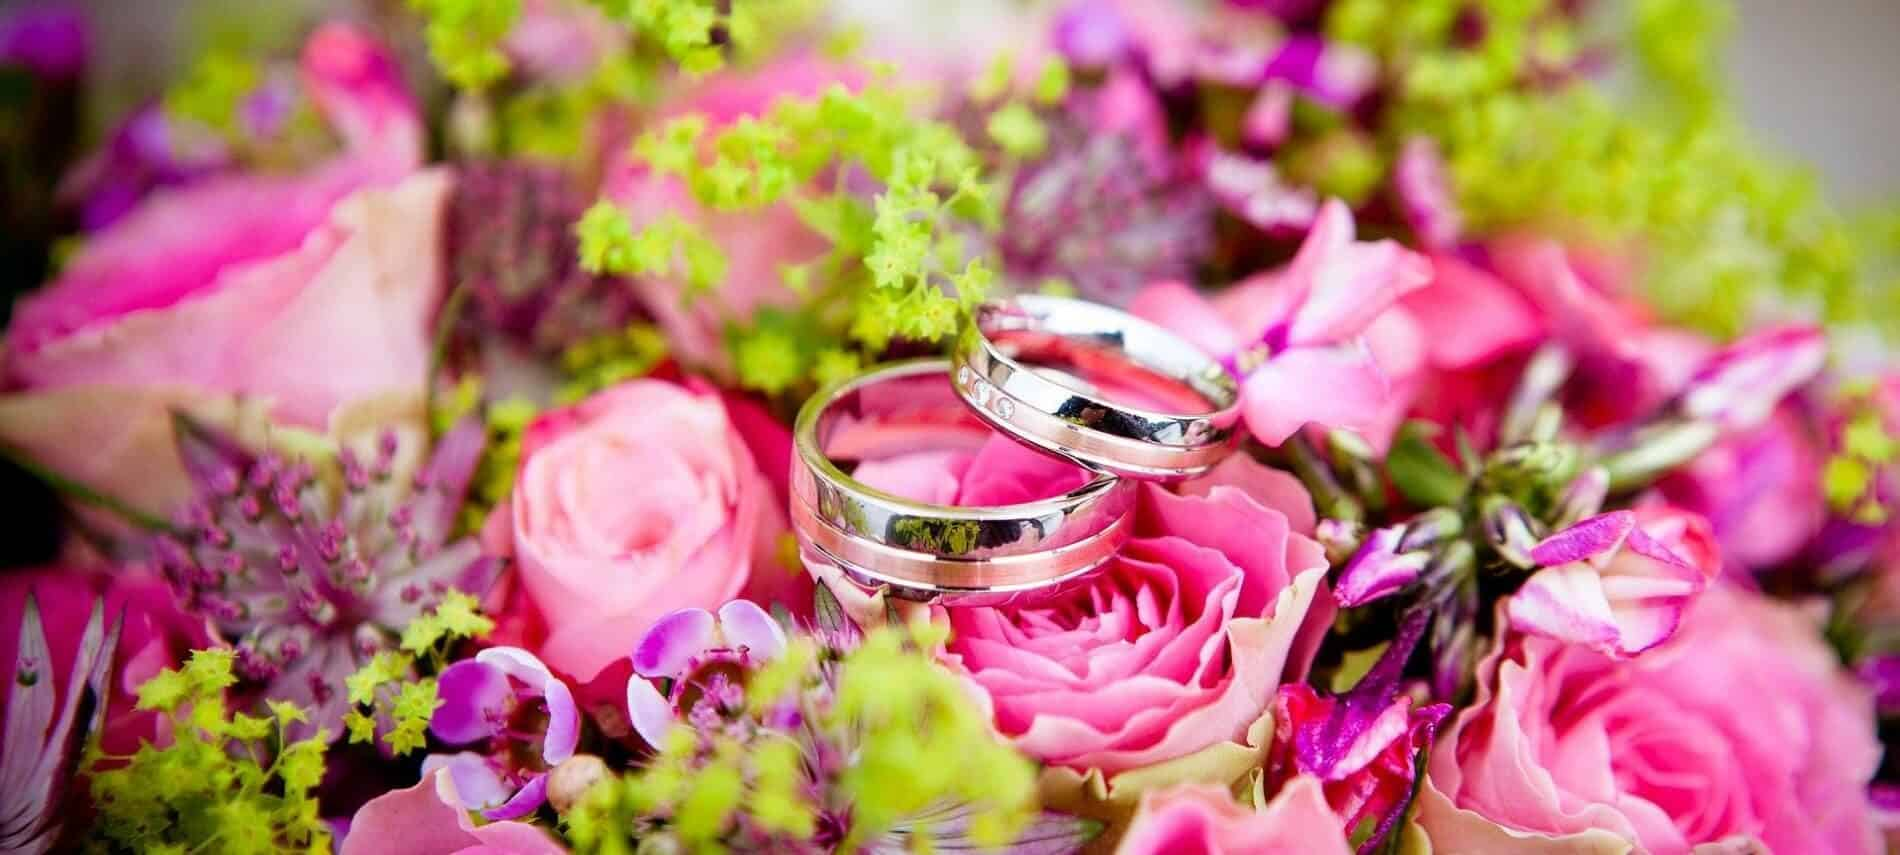 Gorgeous array of pink and purple flowers with an up close view of two silver wedding bands sitting on top